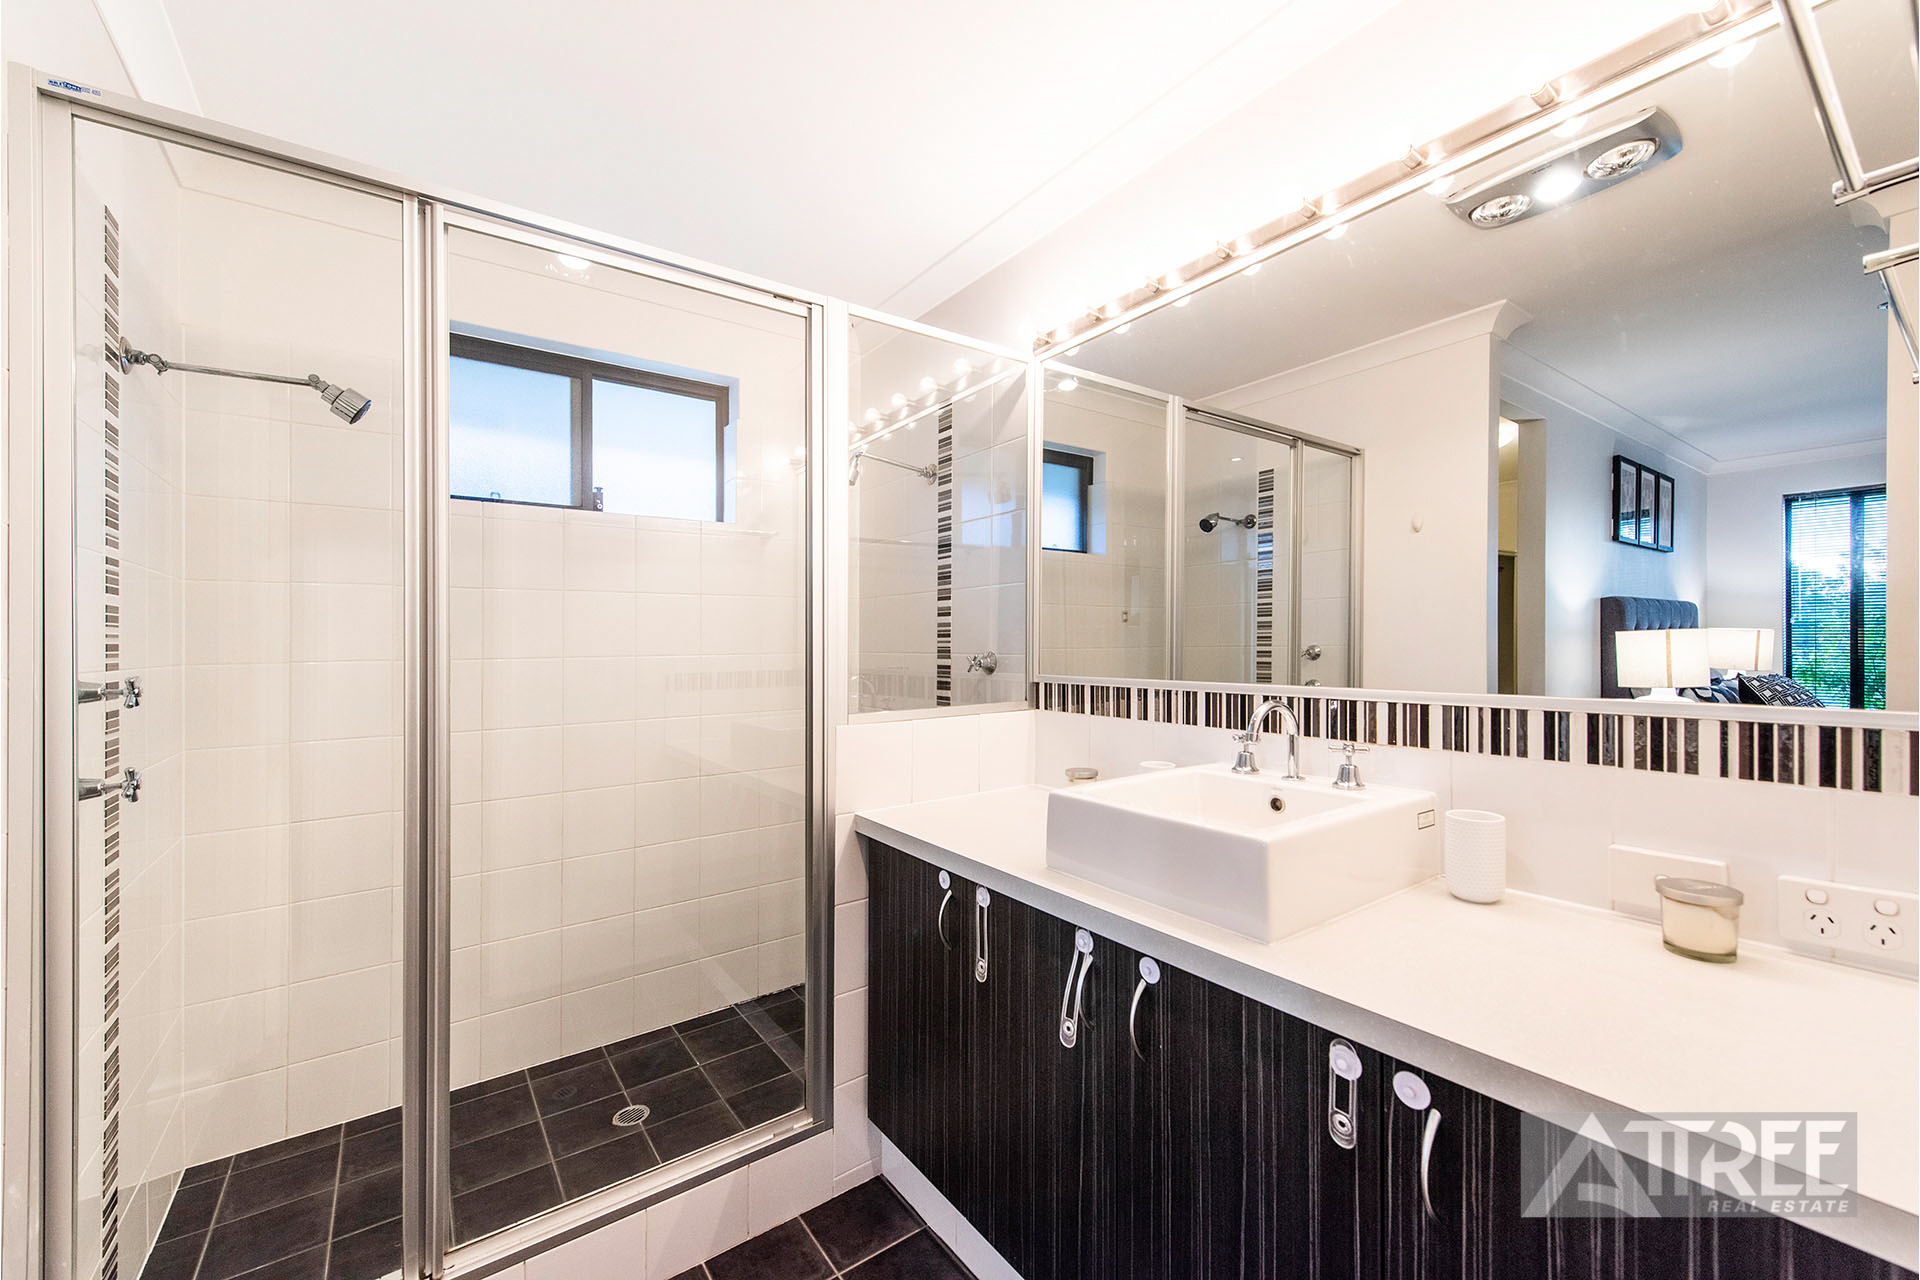 Property for sale in SOUTHERN RIVER, 232 Harpenden Street : Attree Real Estate